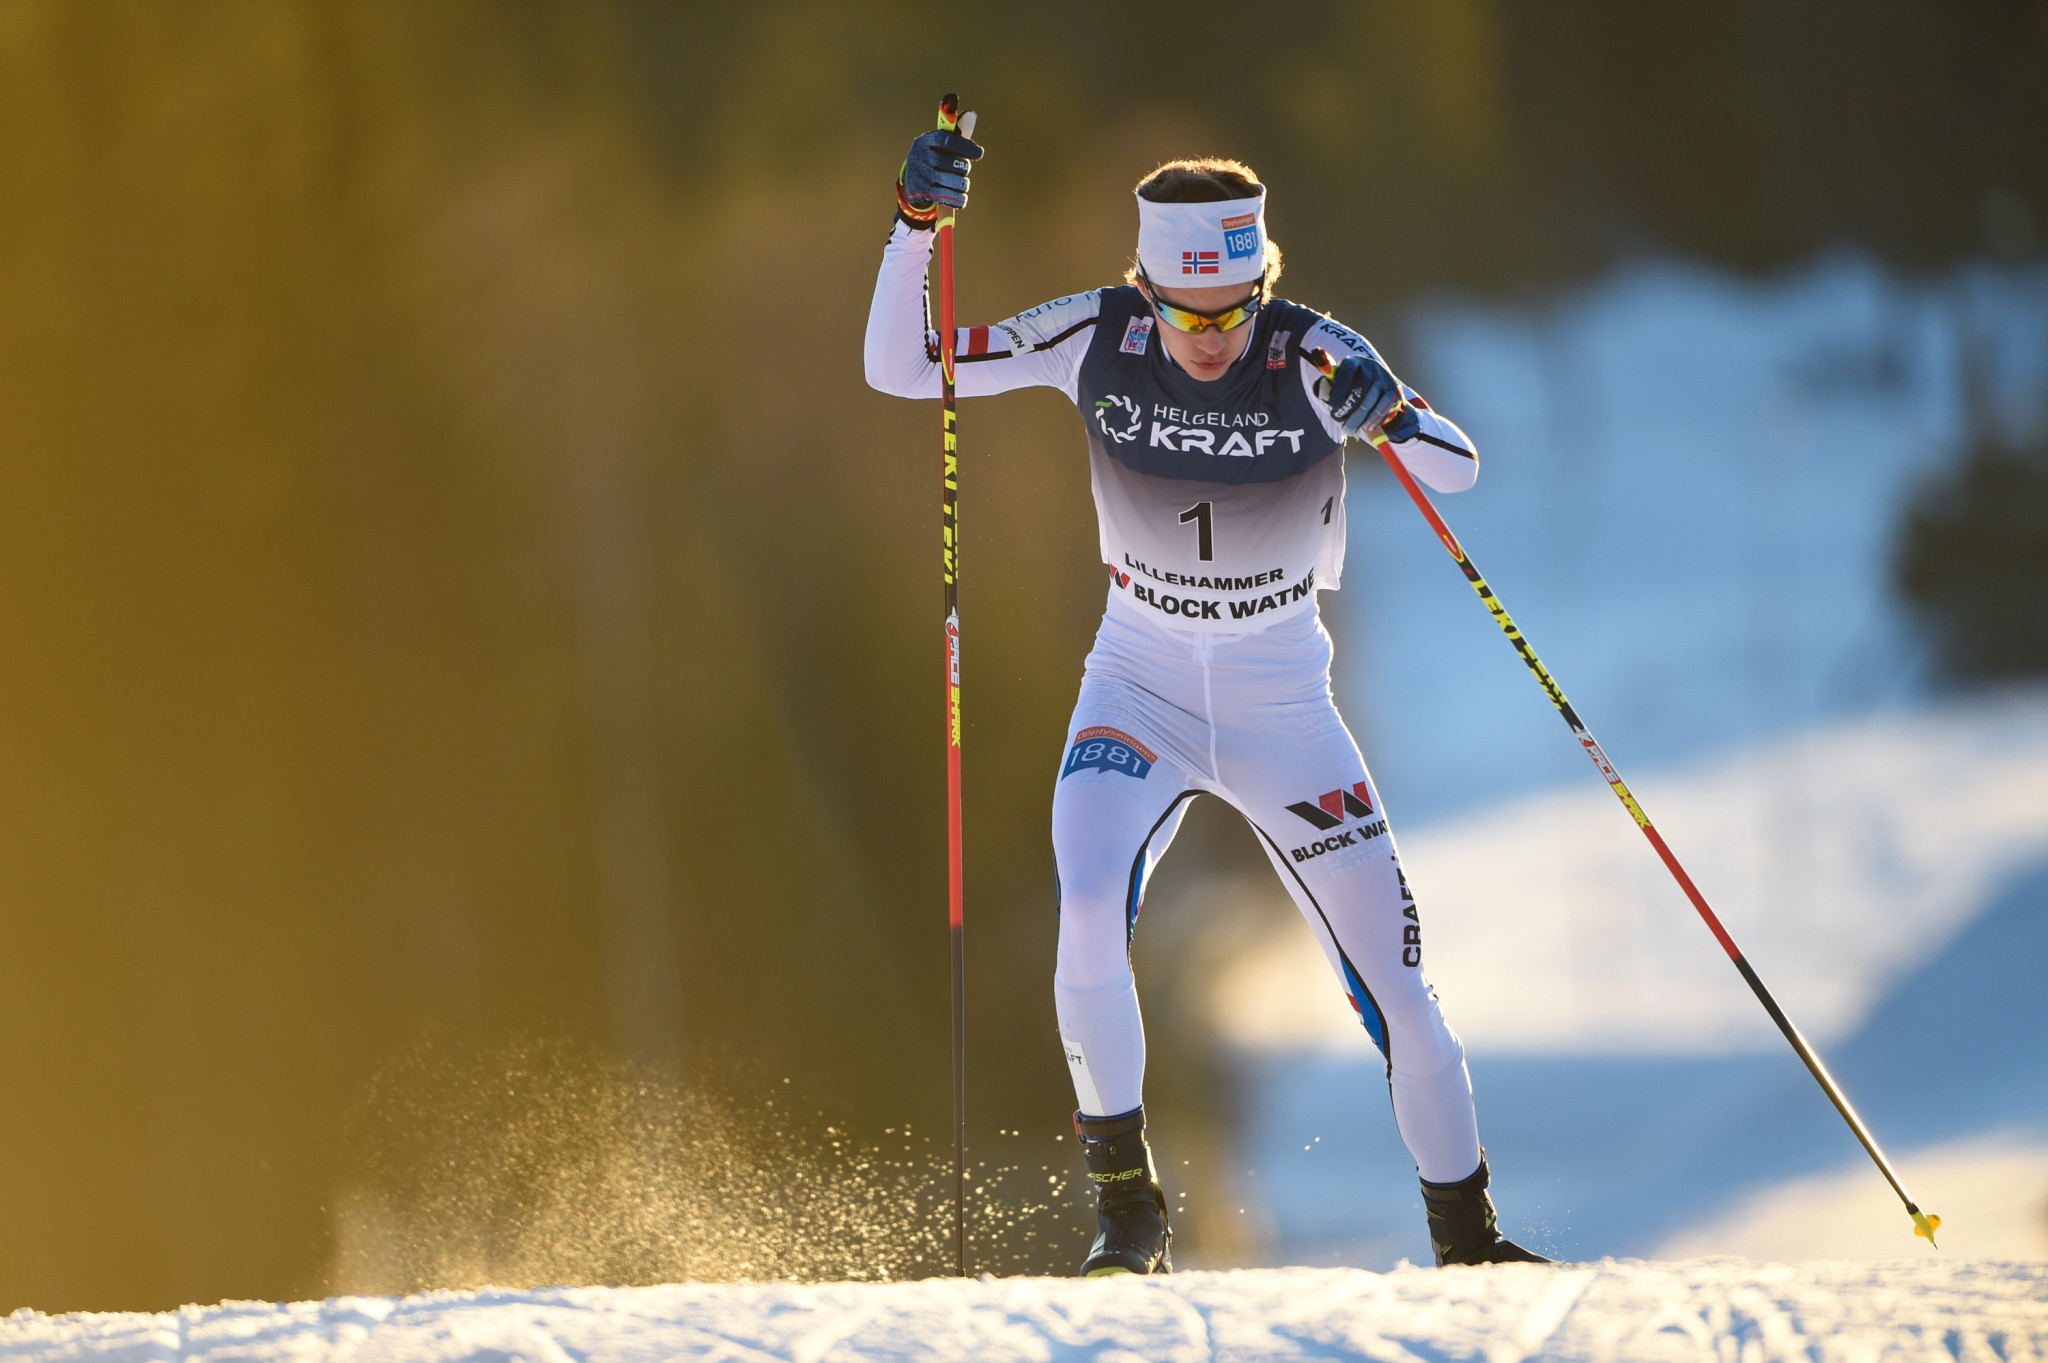 Andersen looks to take Nordic Combined World Cup lead into 2018 in Ramsau